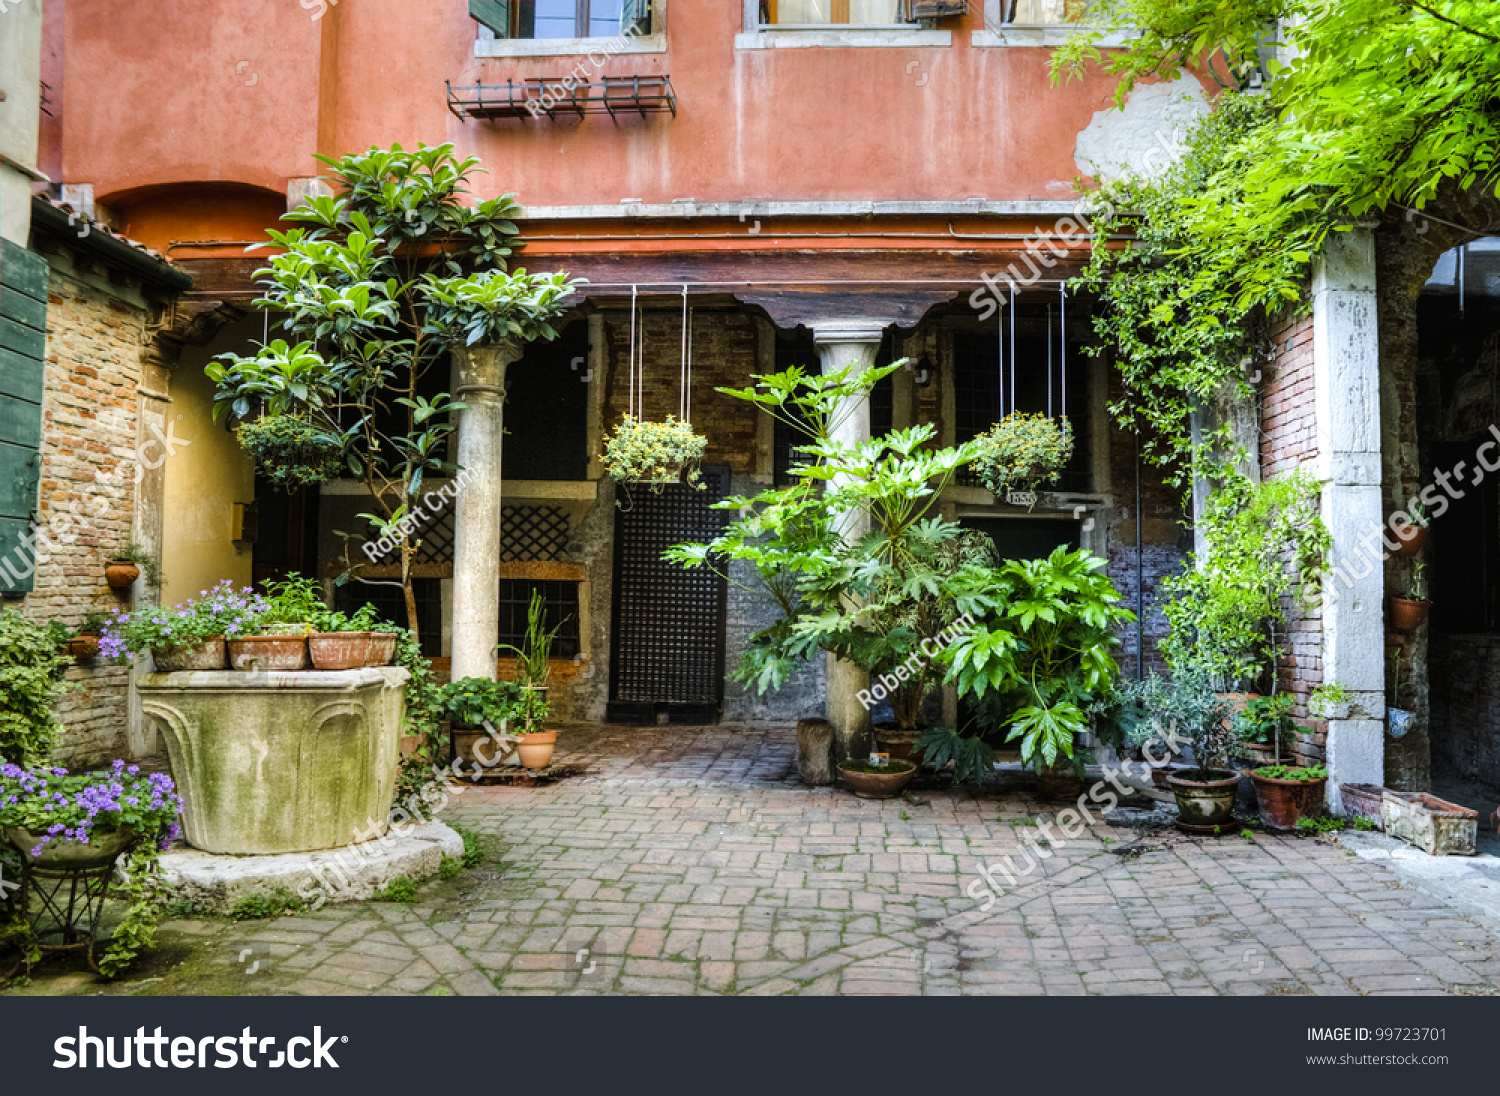 Container Gardening Courtyard Venice Italy Stock Photo Edit Now